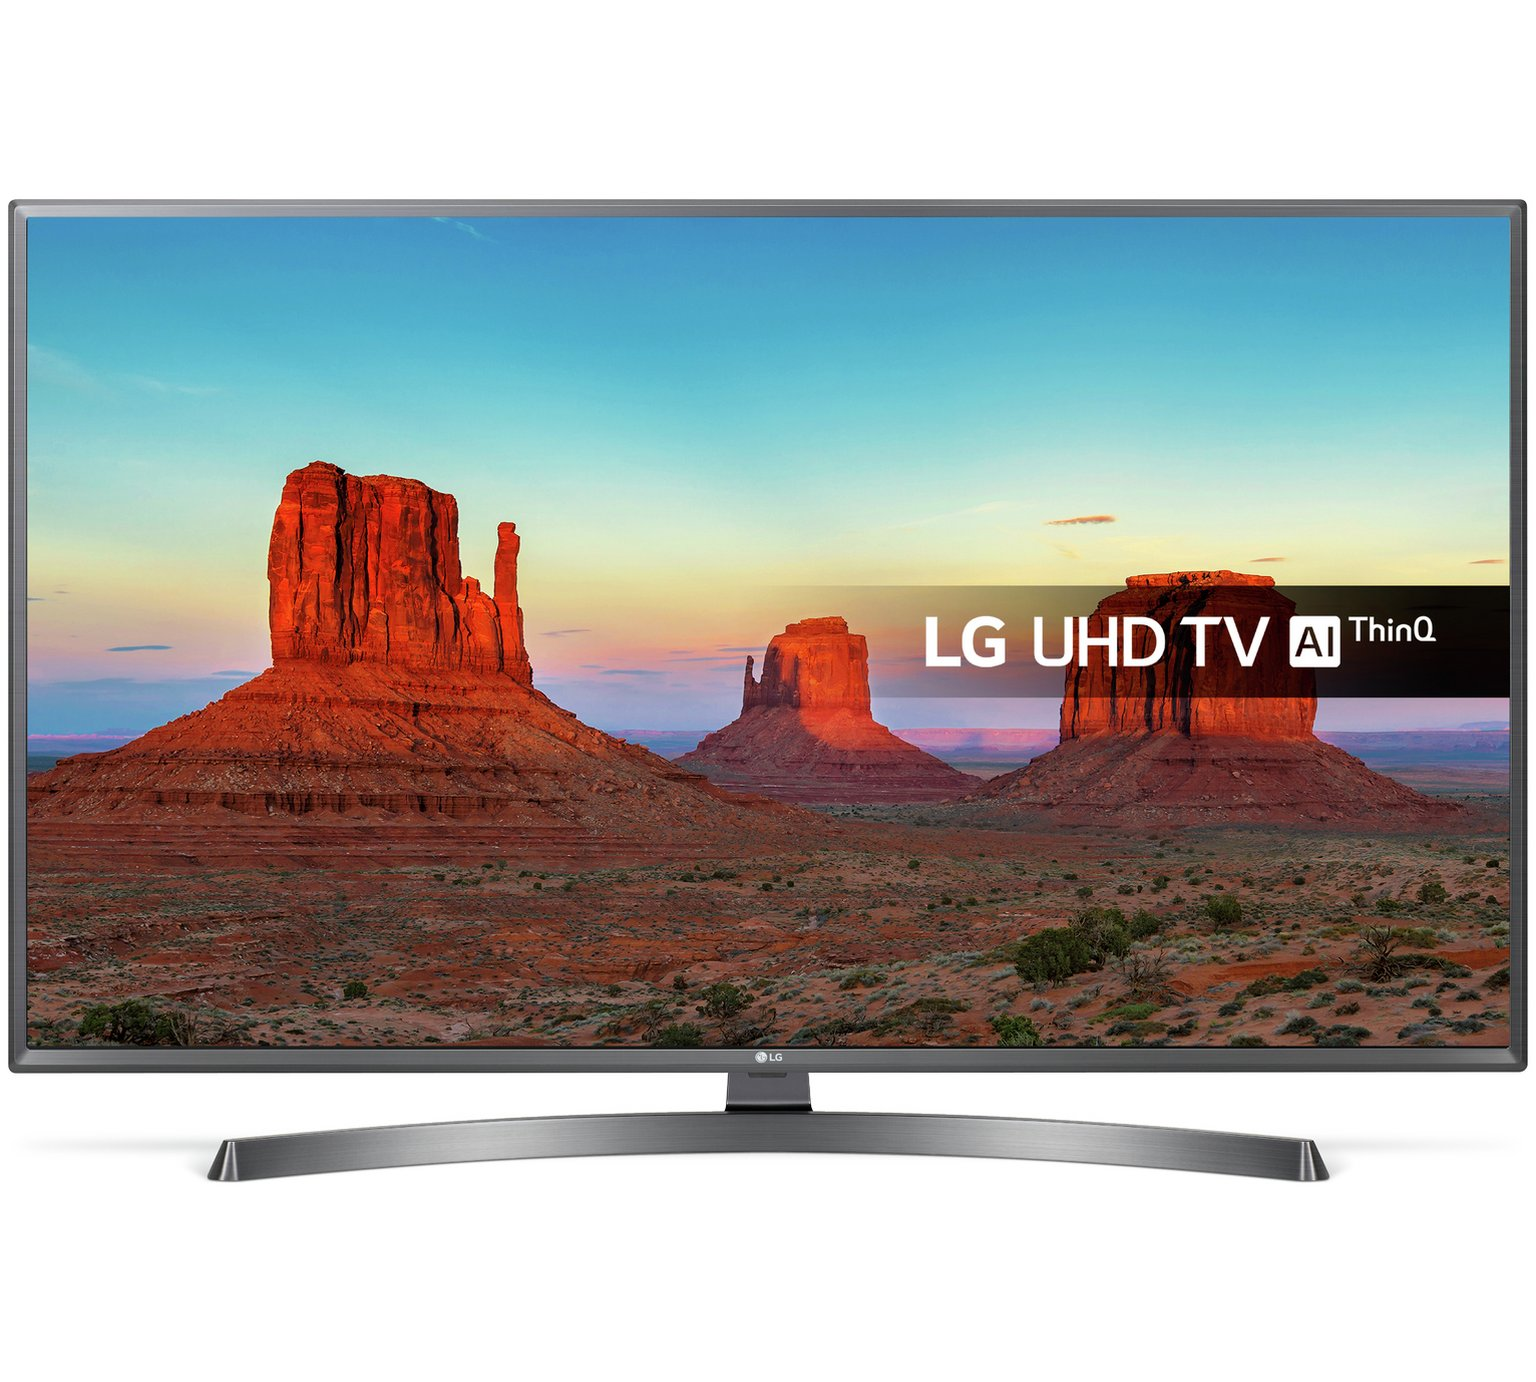 LG 55 Inch 55UK6750PLD Smart Ultra HD TV with HDR by LG 819/3531